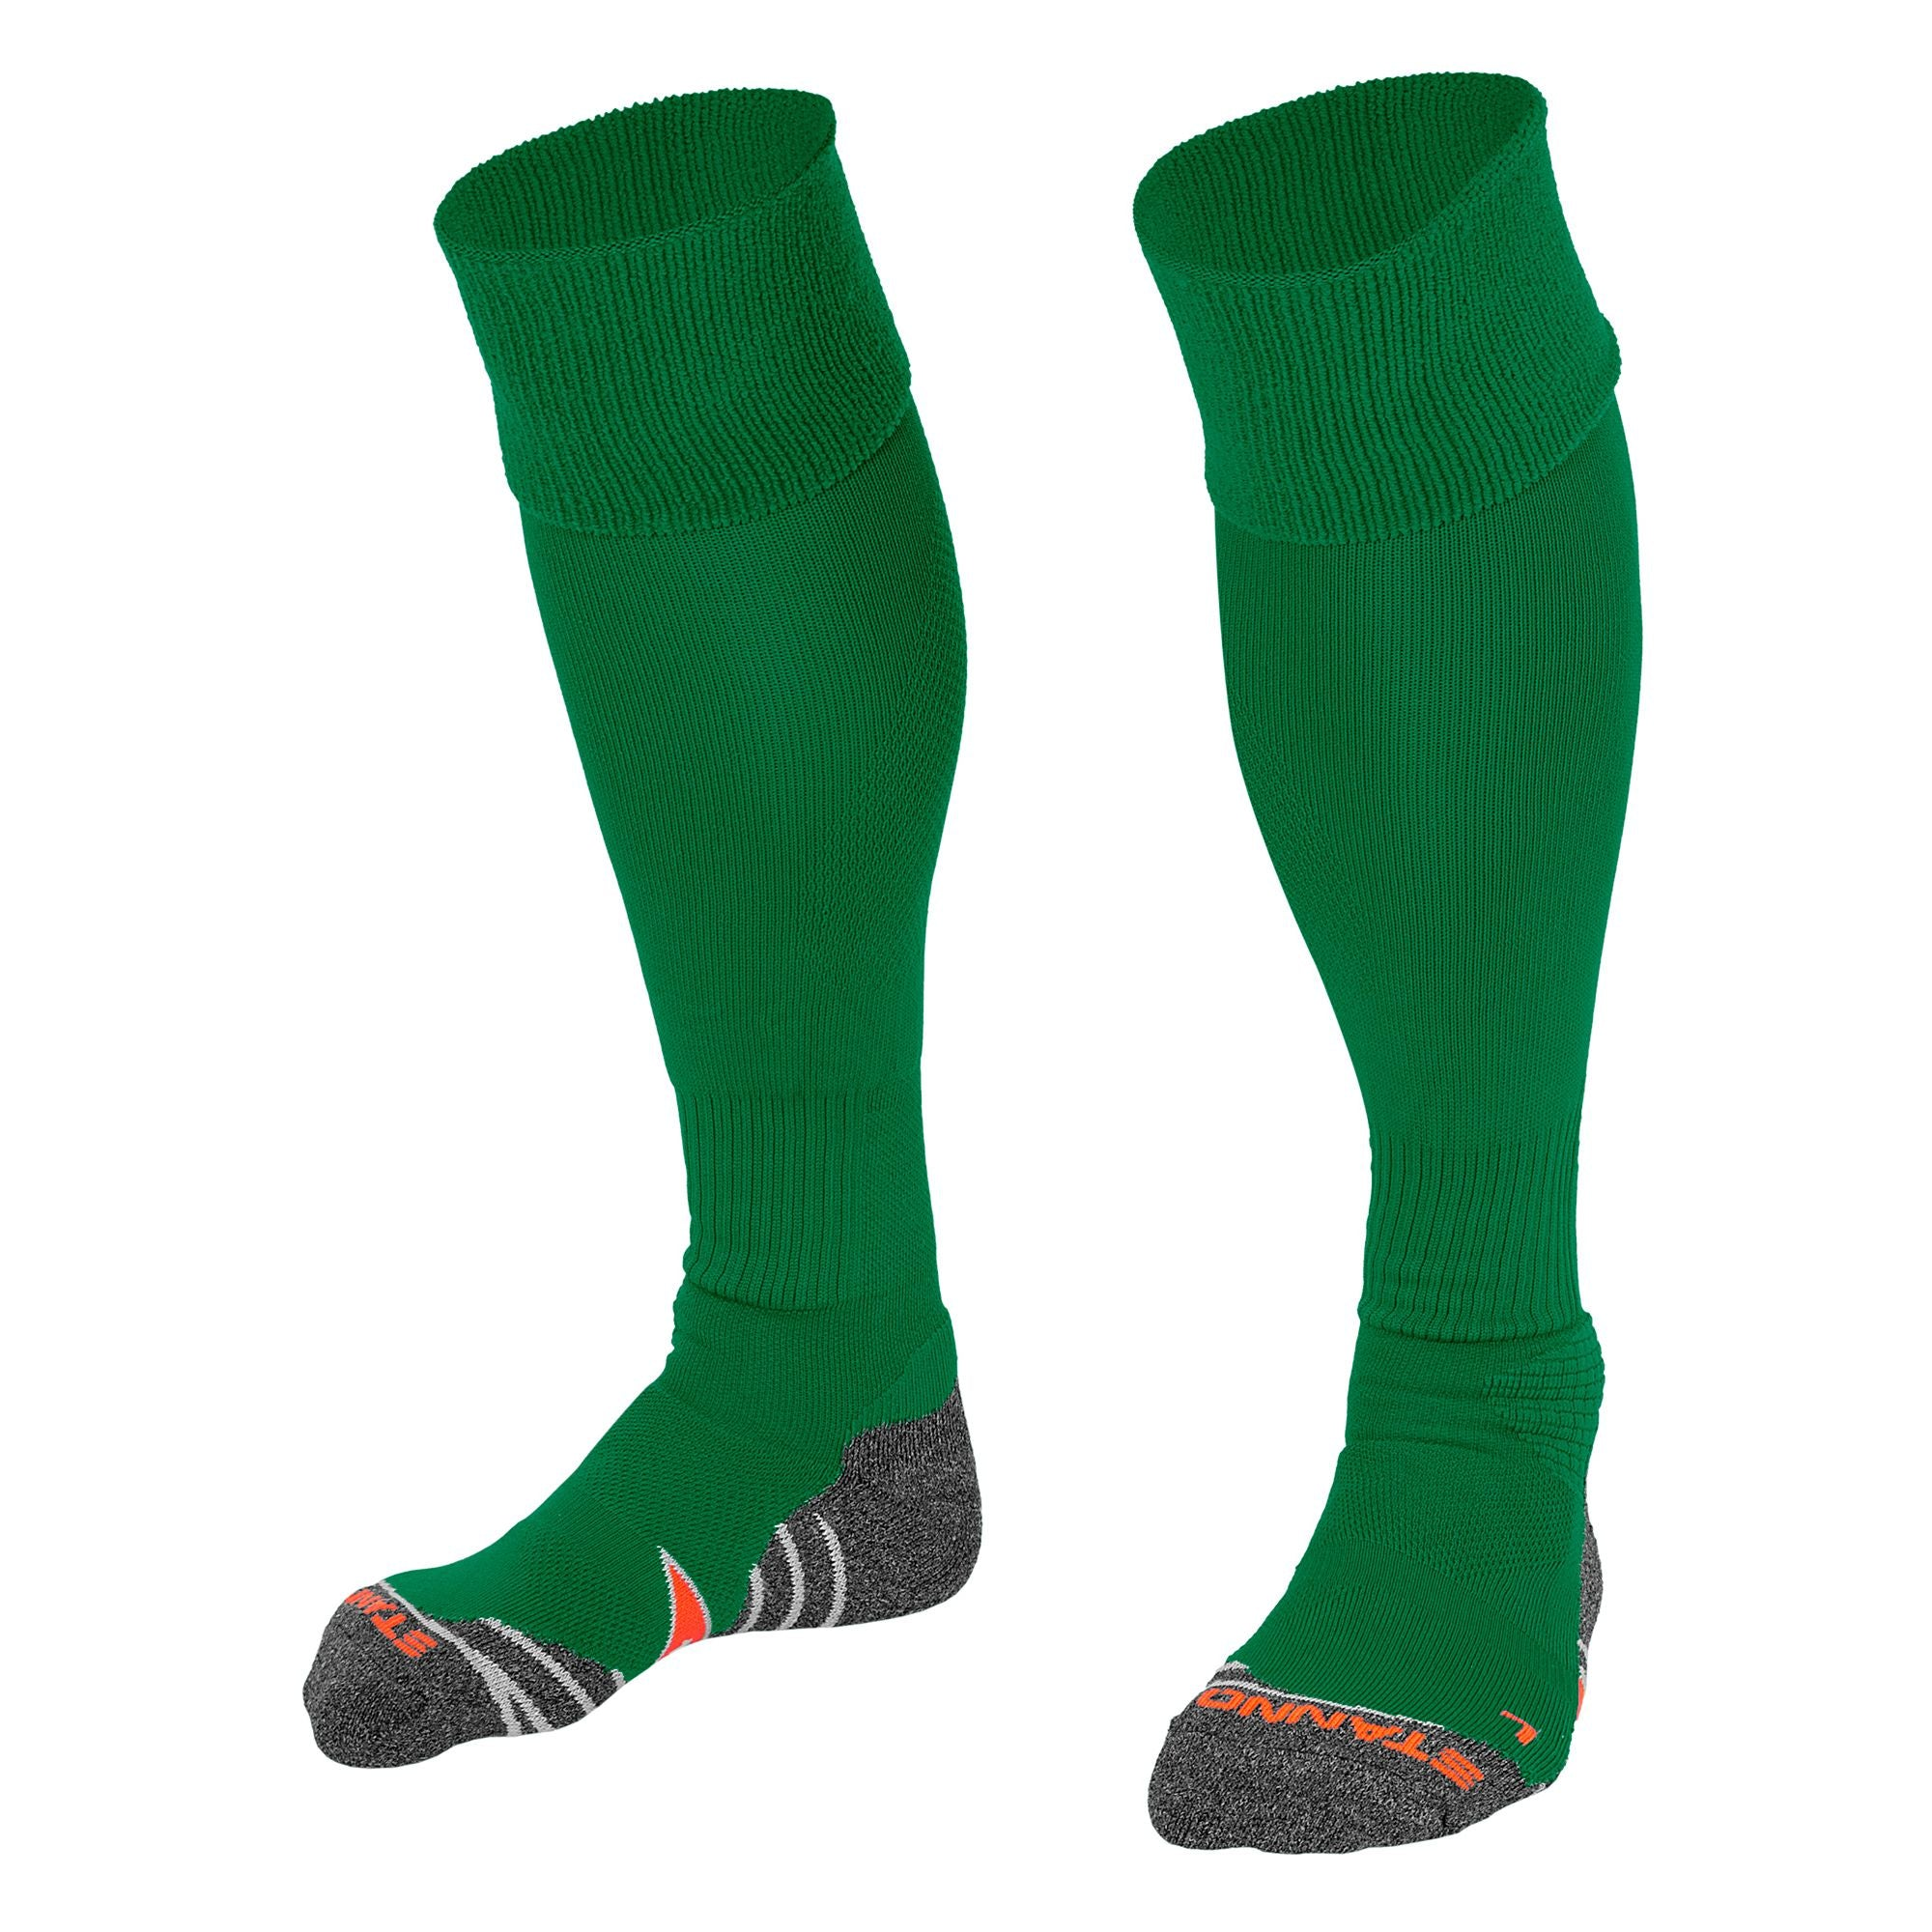 Stanno Uni Sock II football sock in green with grey, white and orange sole